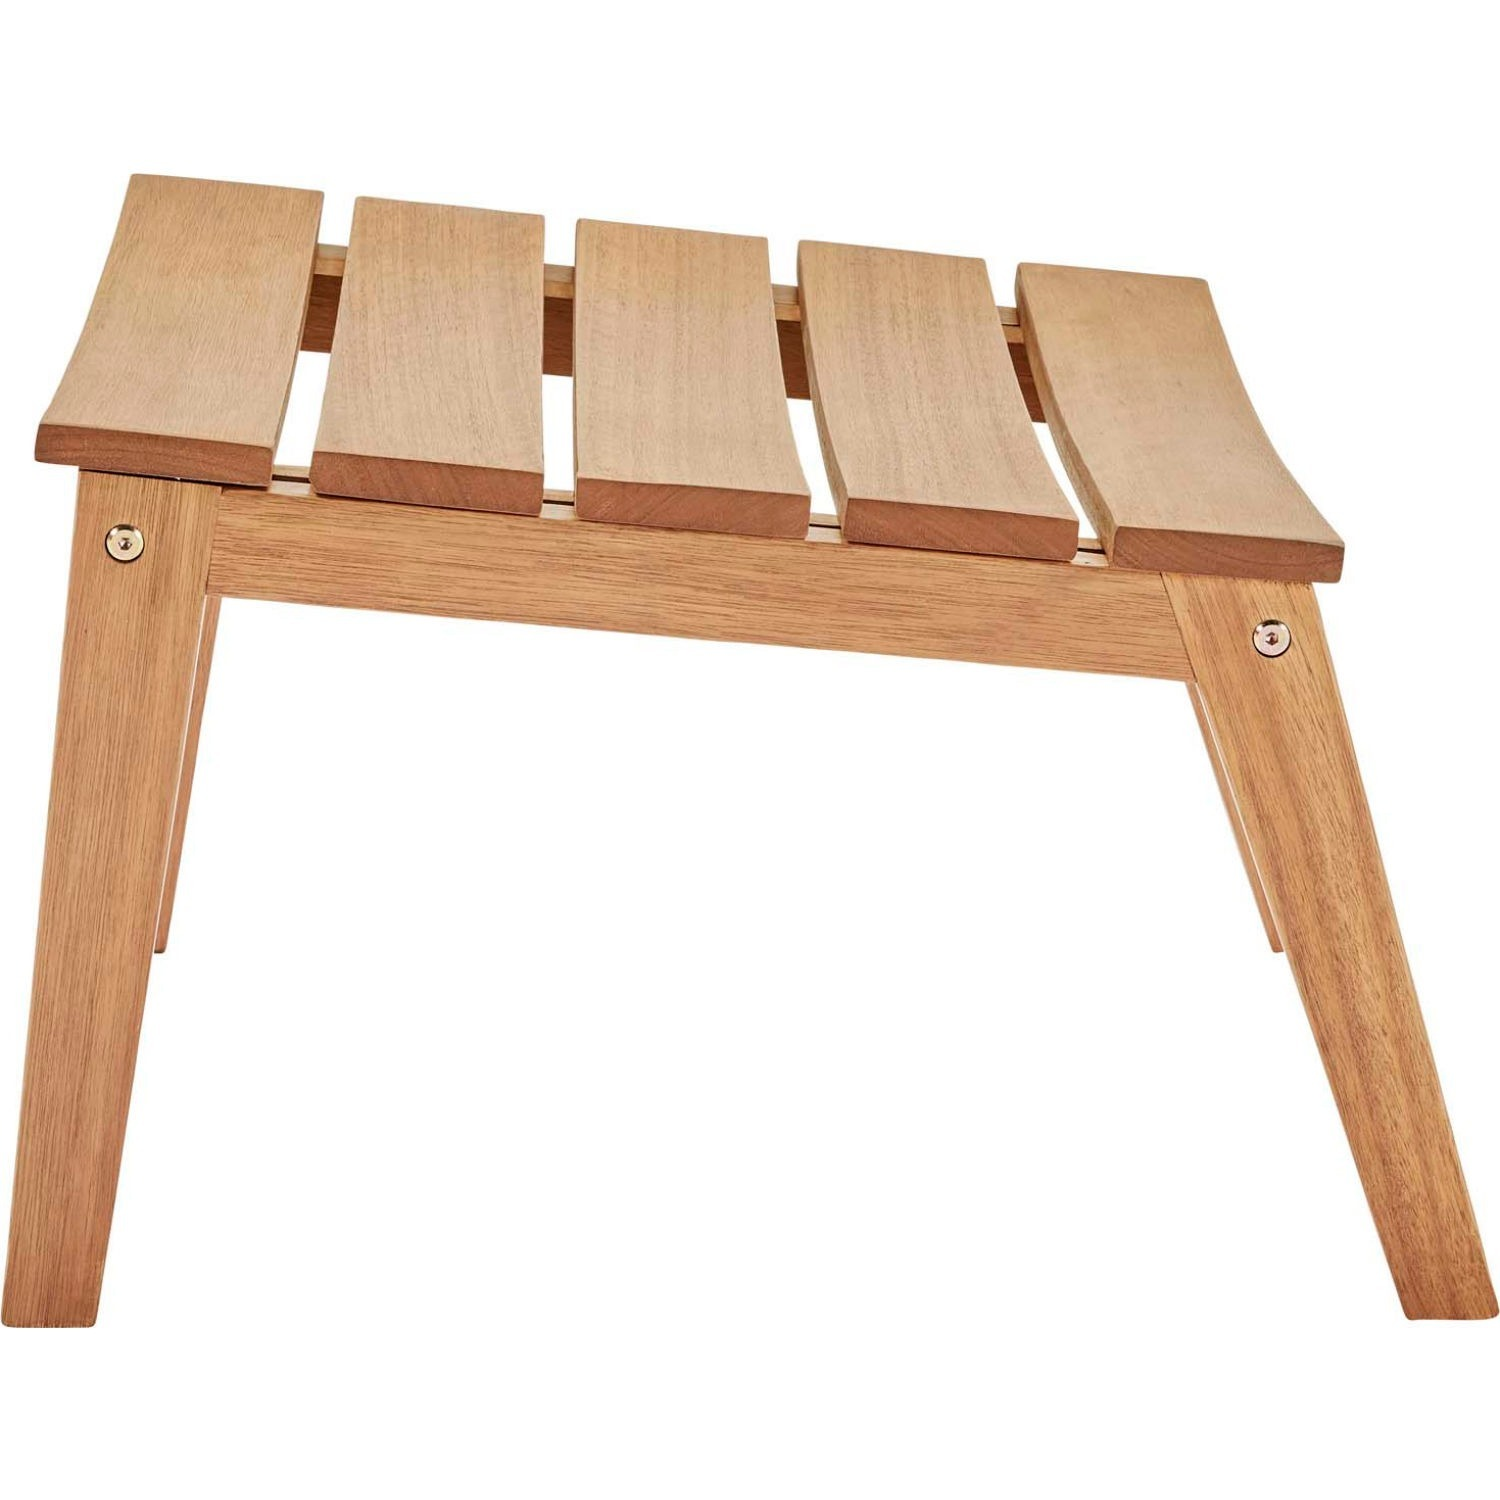 5-Piece Outdoor Patio Set In Ash Wood Finish - image-6